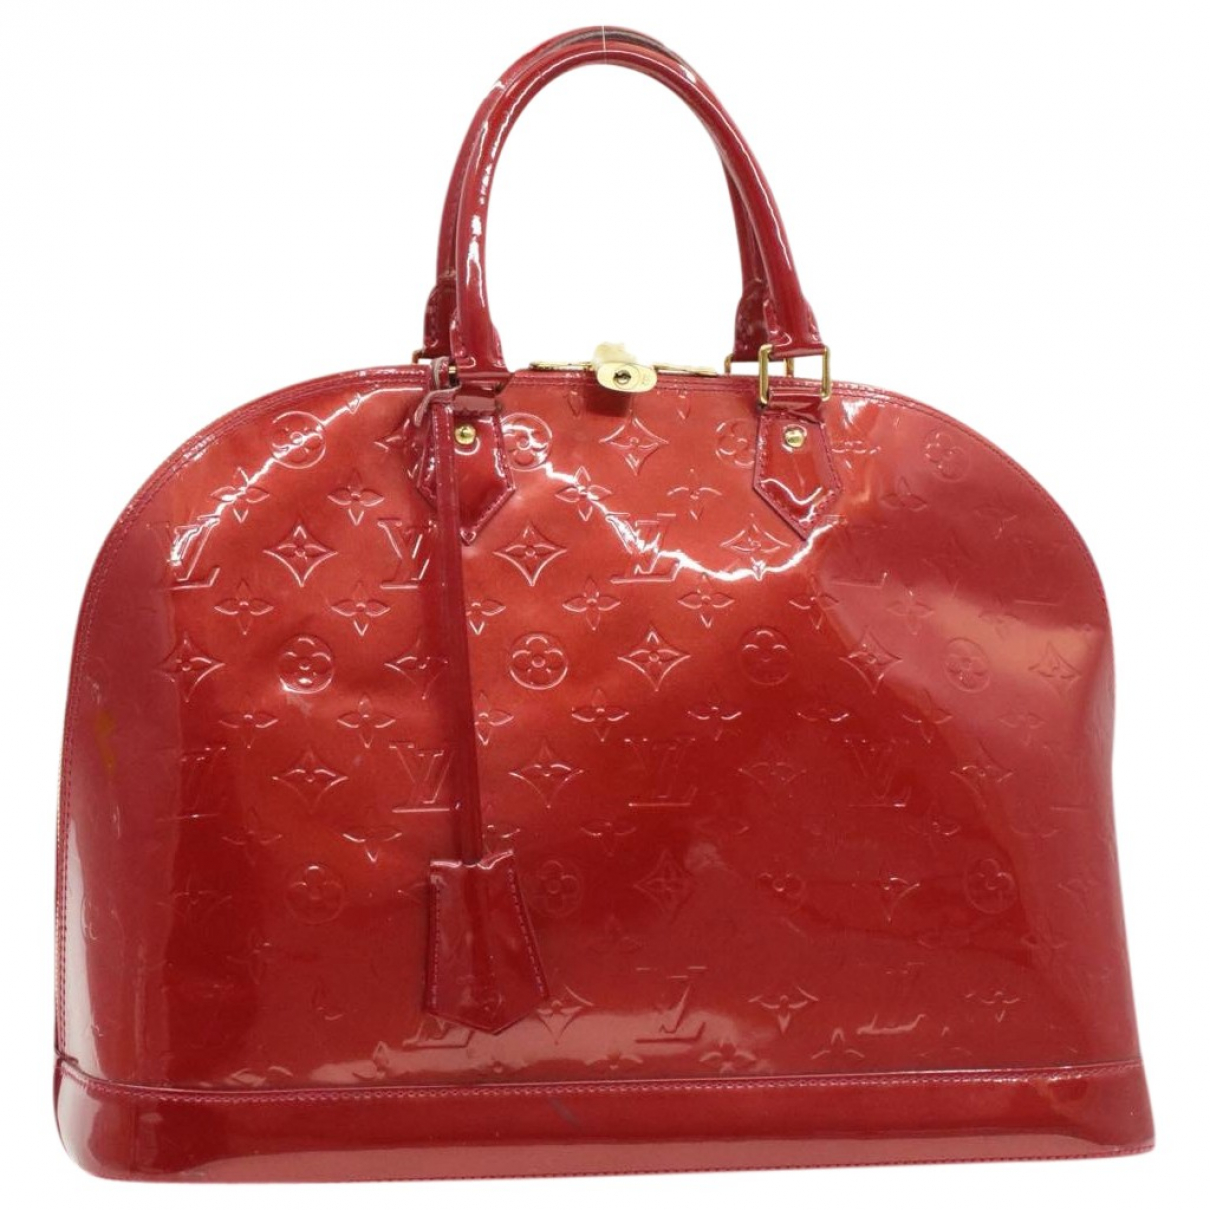 Louis Vuitton Alma Red Patent leather handbag for Women \N